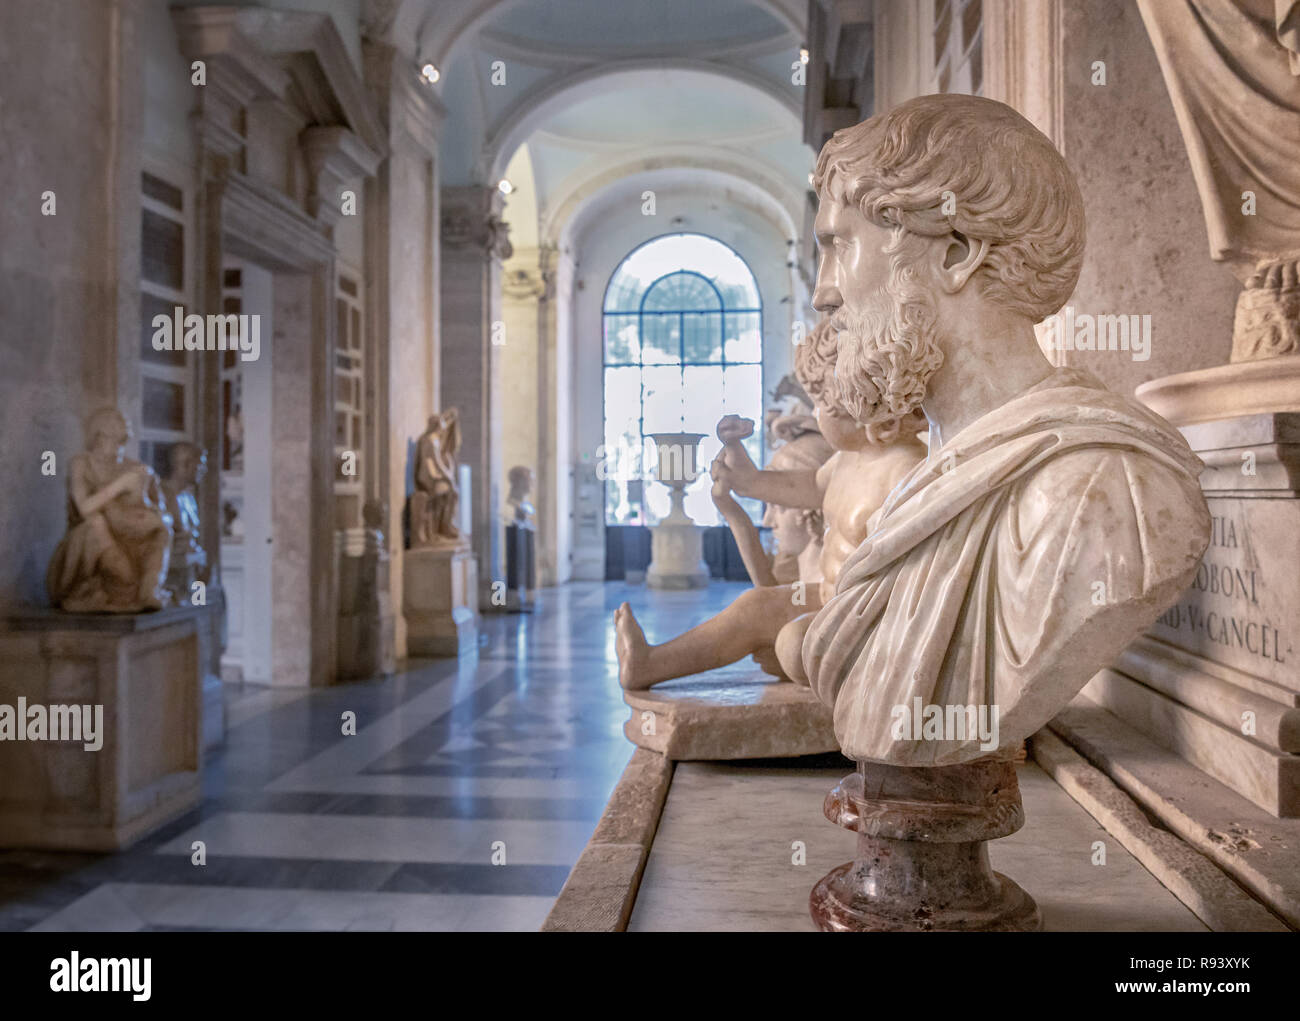 Roman busts, Palazzo Nuovo, The Capitoline Museums, Rome, Lazio, Italy - Stock Image